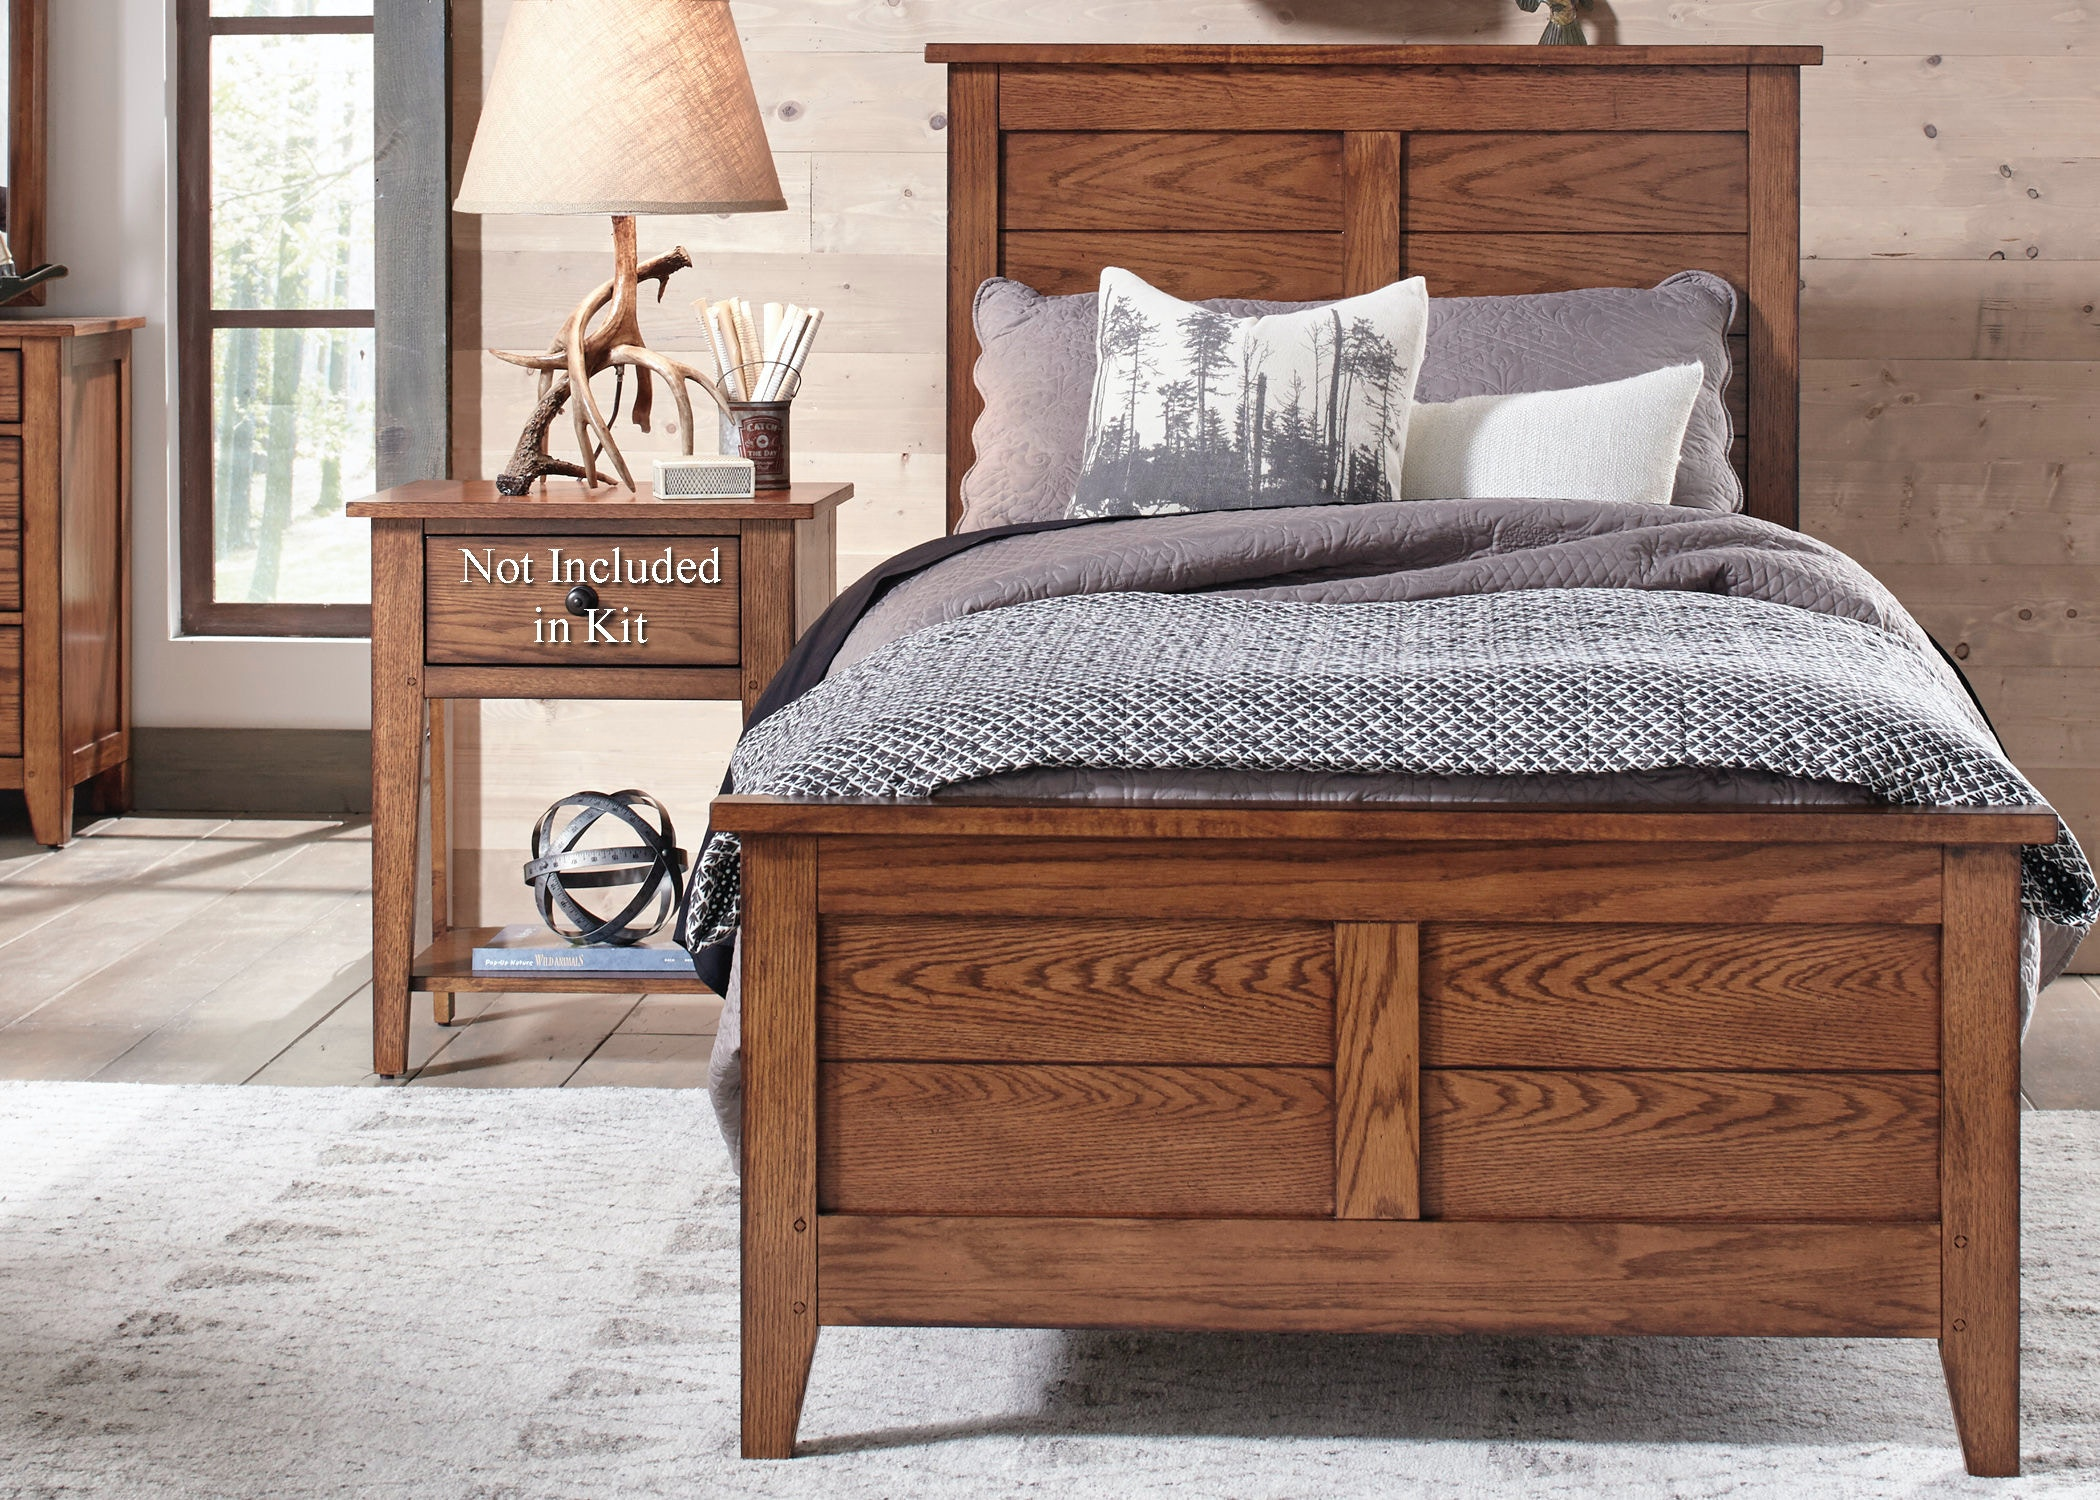 Liberty Furniture Youth Twin Panel Headboard And Footboard 175 BR13HF   Smith  Village Home Furniture   Jacobus And York, PA